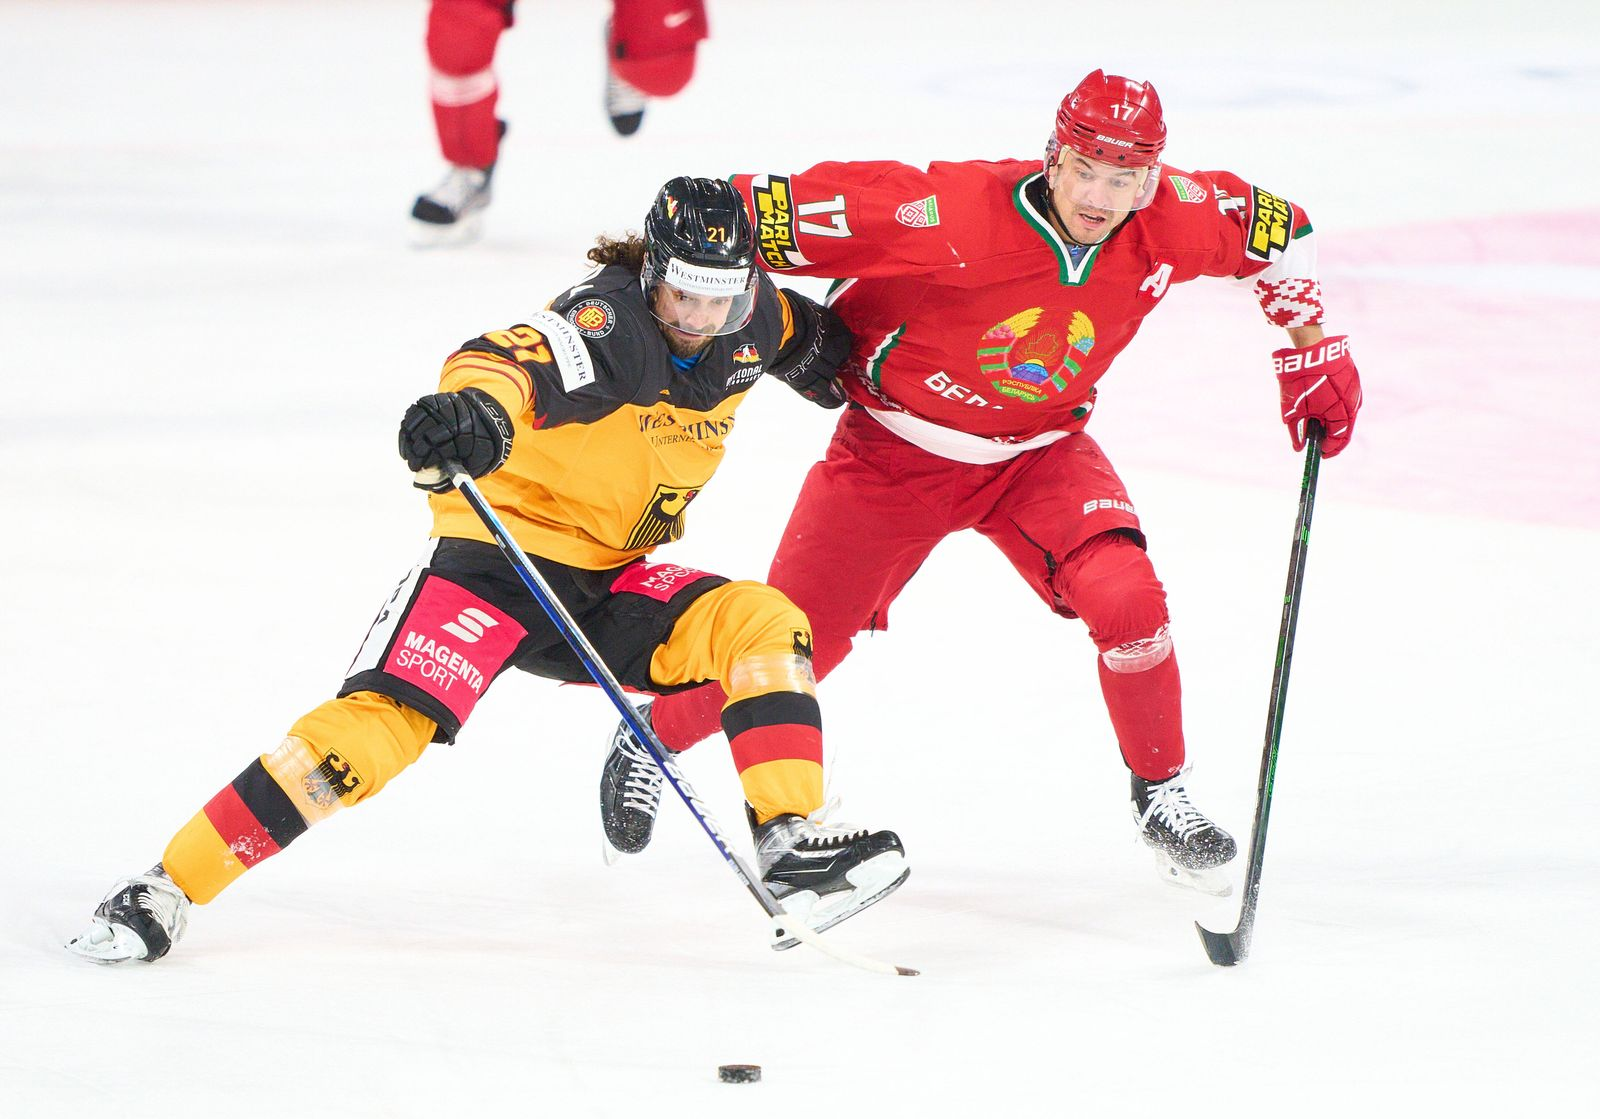 Nikolas KRÄMMER, DEB 21 compete, fight for the puck against Francic PARE, BLR 17 at the match GERMANY - BELARUS Friendl